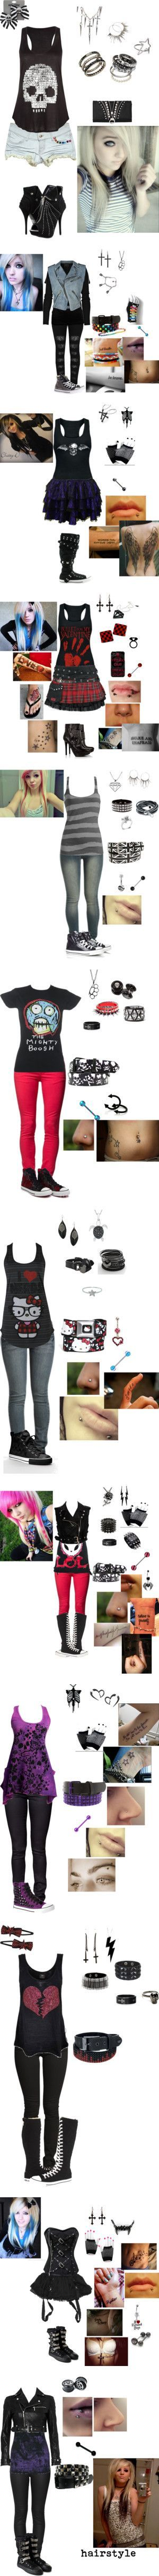 """""""Emo / gothic clothes Part 4"""" by foreverbroken ❤ liked on Polyvore - jessi's basic wardrobe she wishes #EmoFashion"""